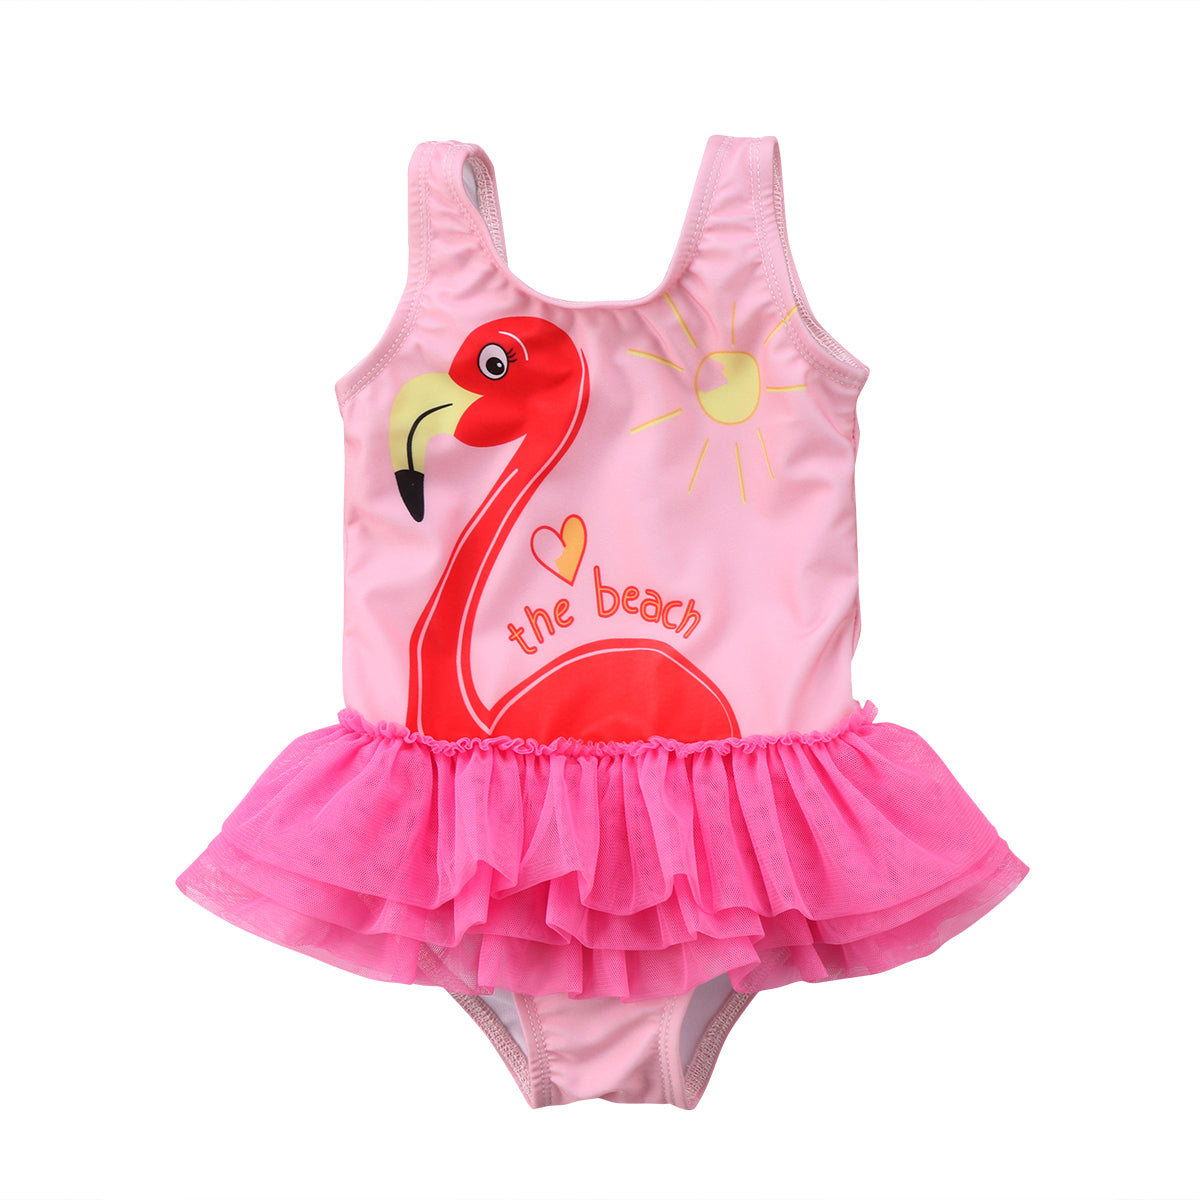 Pudcoco Beach Swan Lace Pink Kids Baby Girl Sleeveless Bikini Pink Tankini Swimwear Swimsuit Beachwear